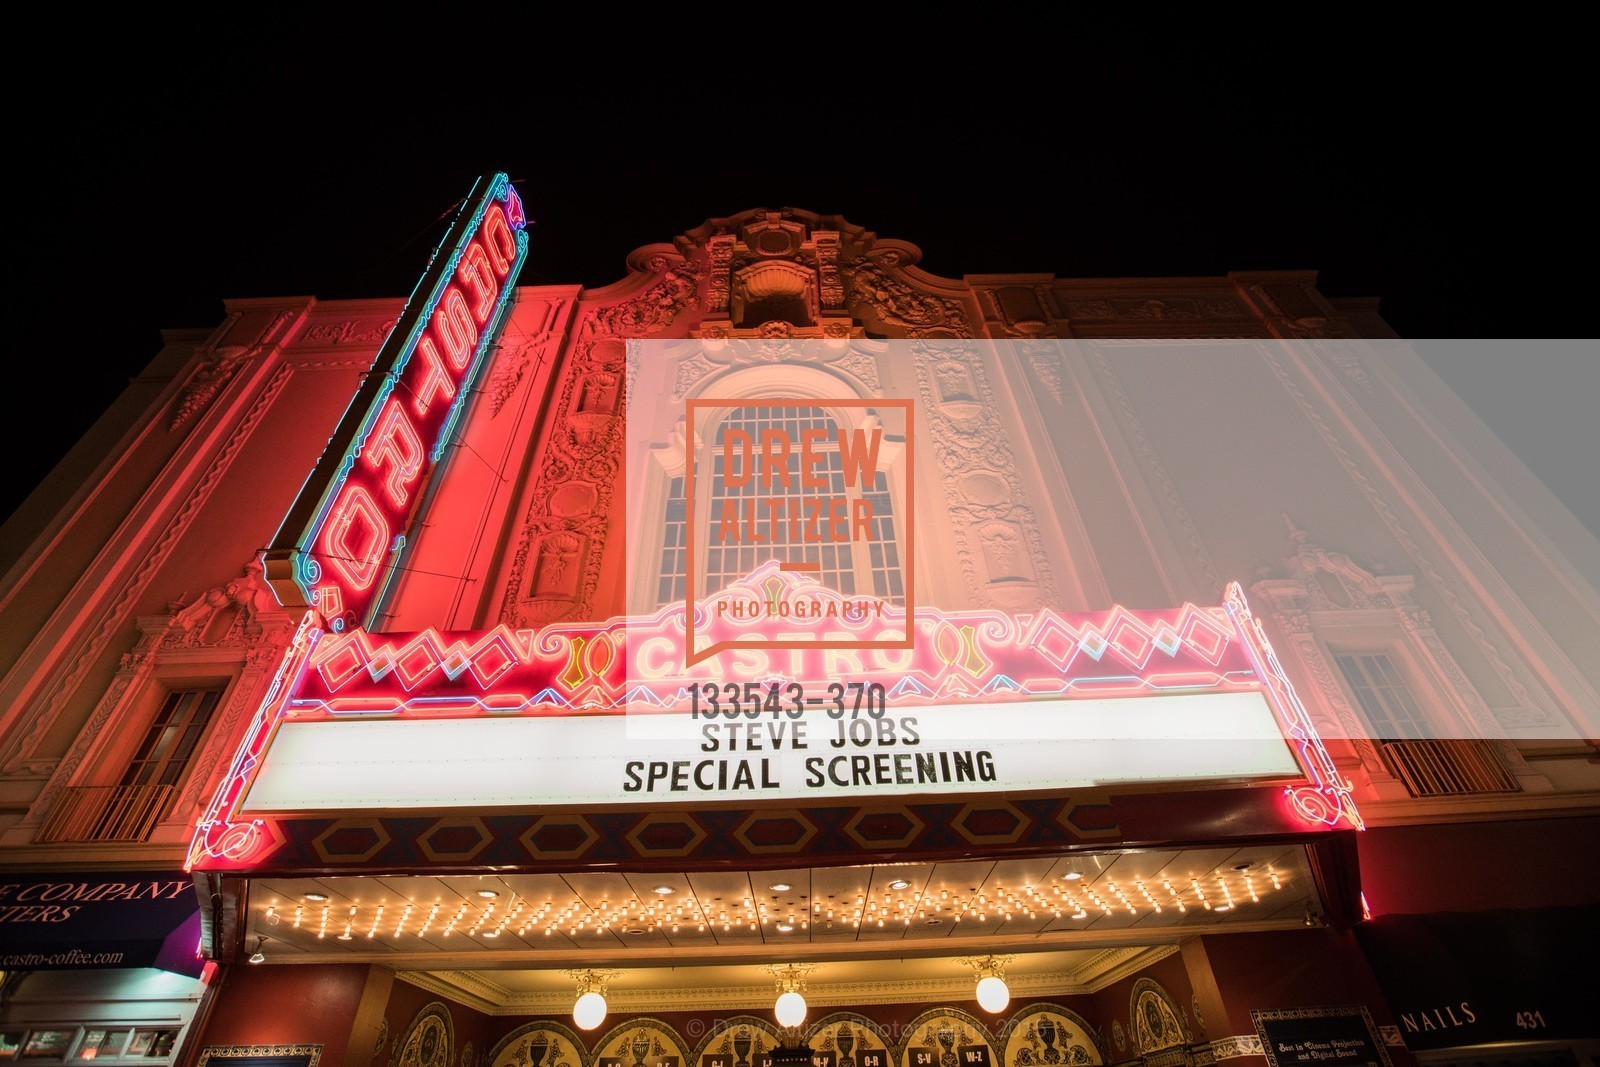 The Castro Theater, SAN FRANCISCO SPECIAL SCREENING OF STEVE JOBS PRESENTED BY UNIVERSAL PICTURES, OCTOBER 9, 2015 AT THE CASTRO THEATRE, Castro Theater, October 9th, 2015